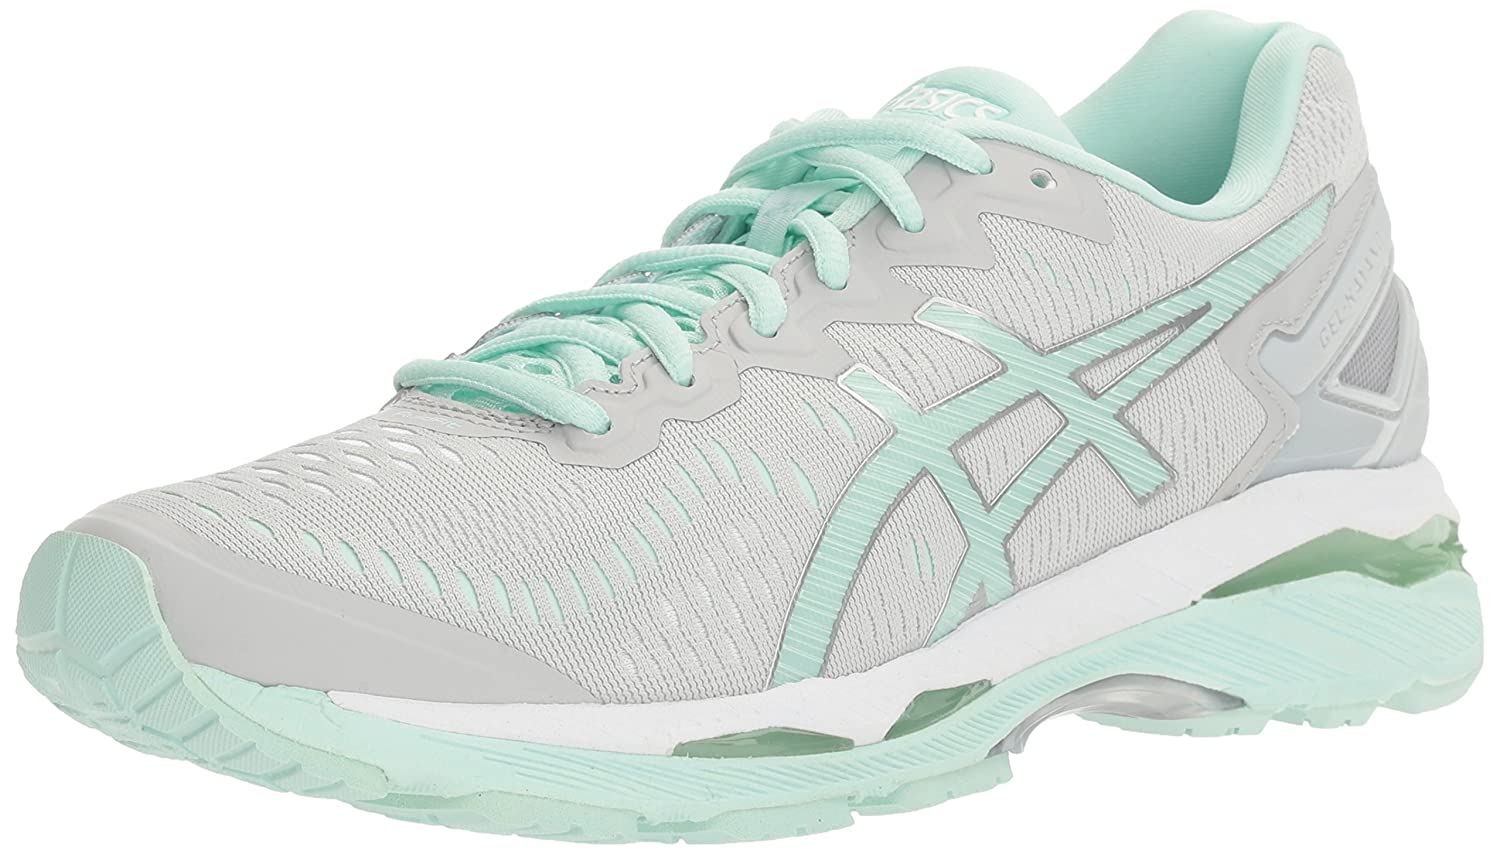 ASICS Women's Gel-Kayano 23 Running Shoe B01GSYZGPU 10 B(M) US|Glacier Gray/Bay/White